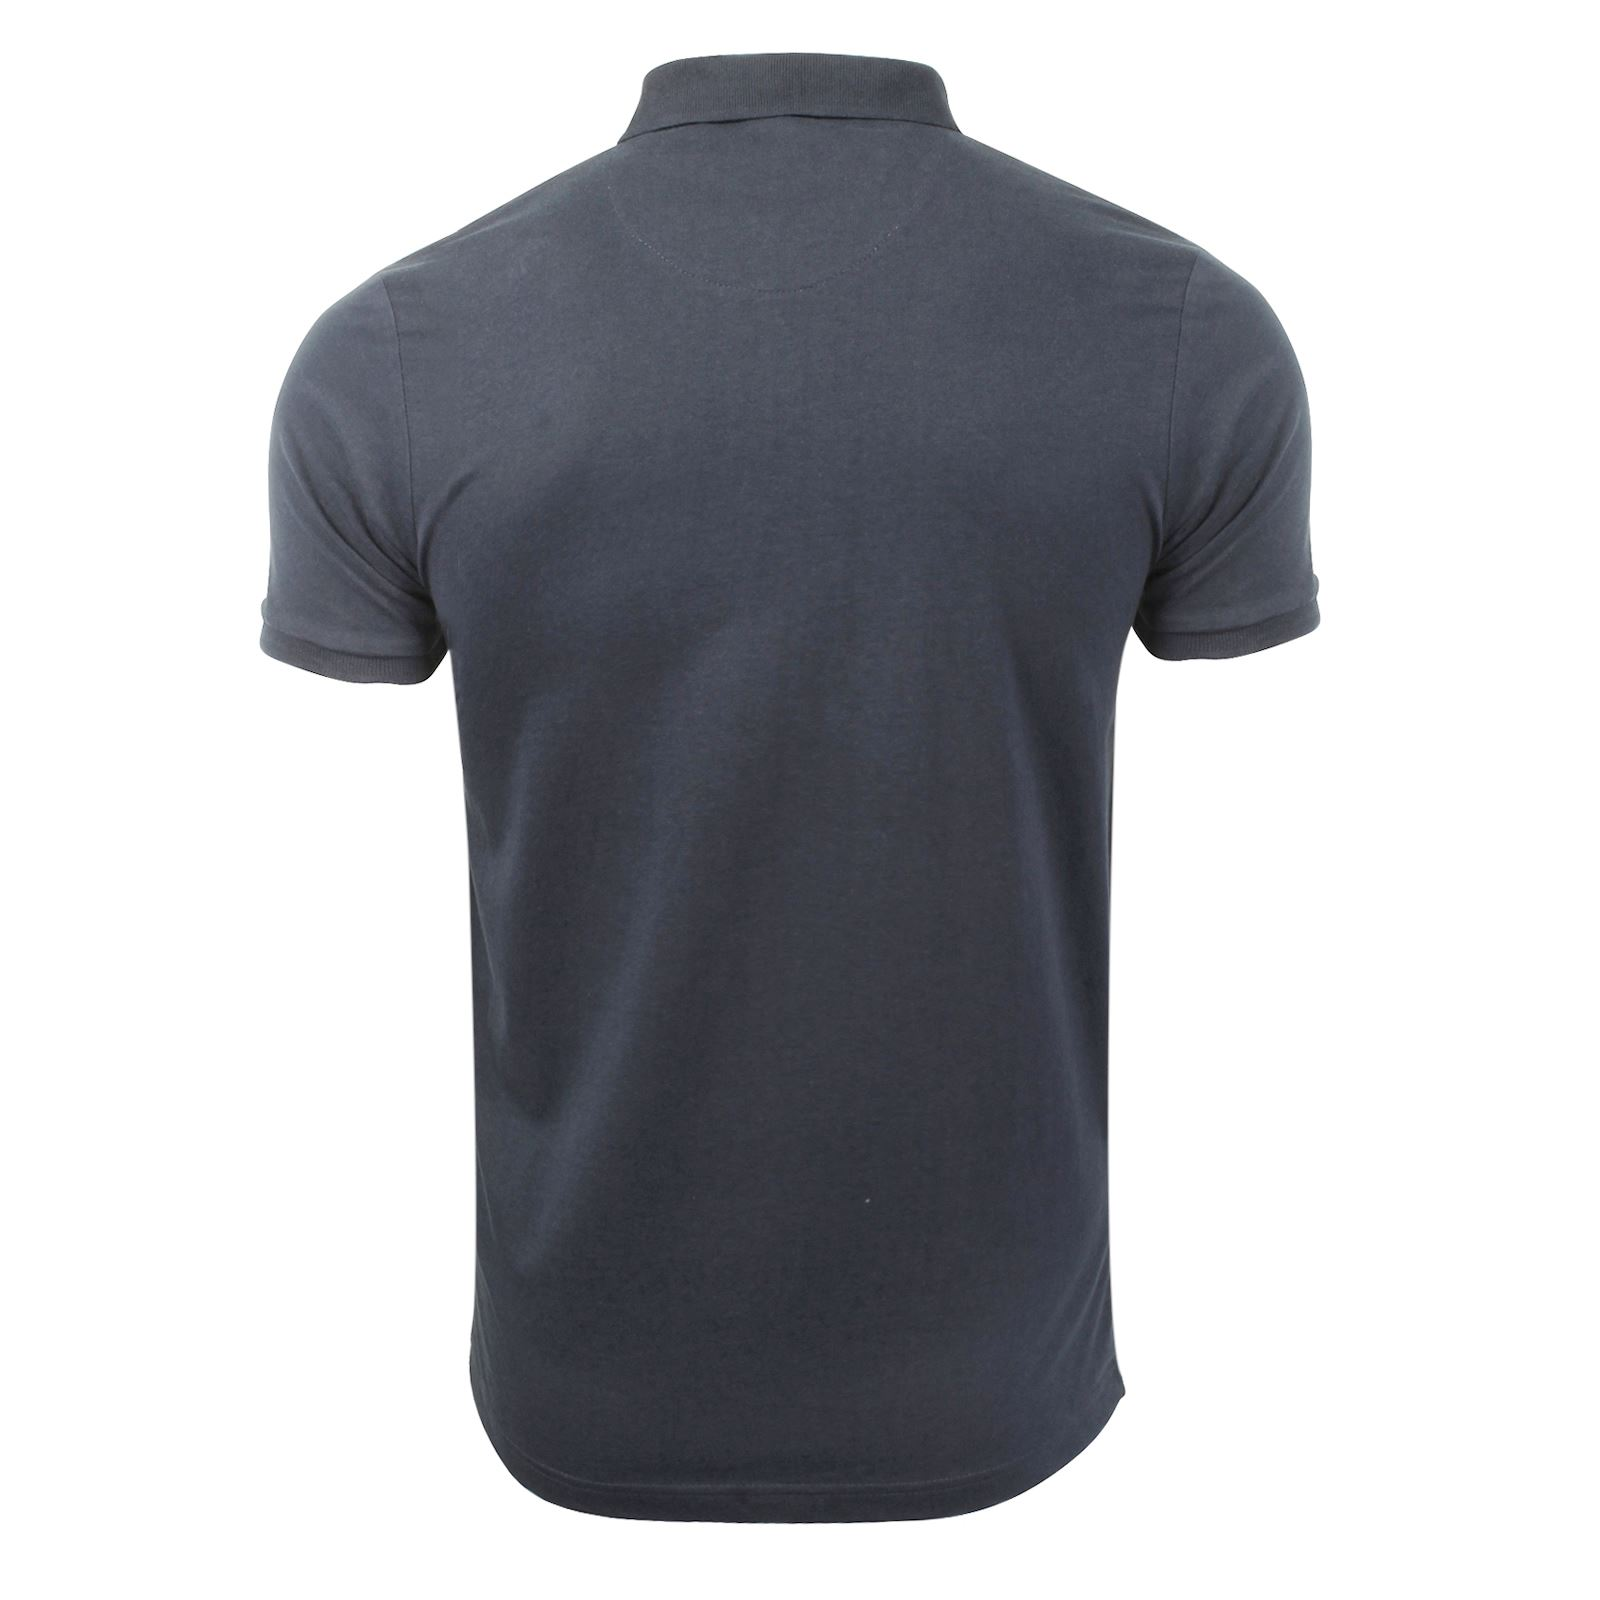 Mens-Polo-T-Shirt-Brave-Soul-Julius-Cotton-Collared-Short-Sleeve-Casual-Top thumbnail 35